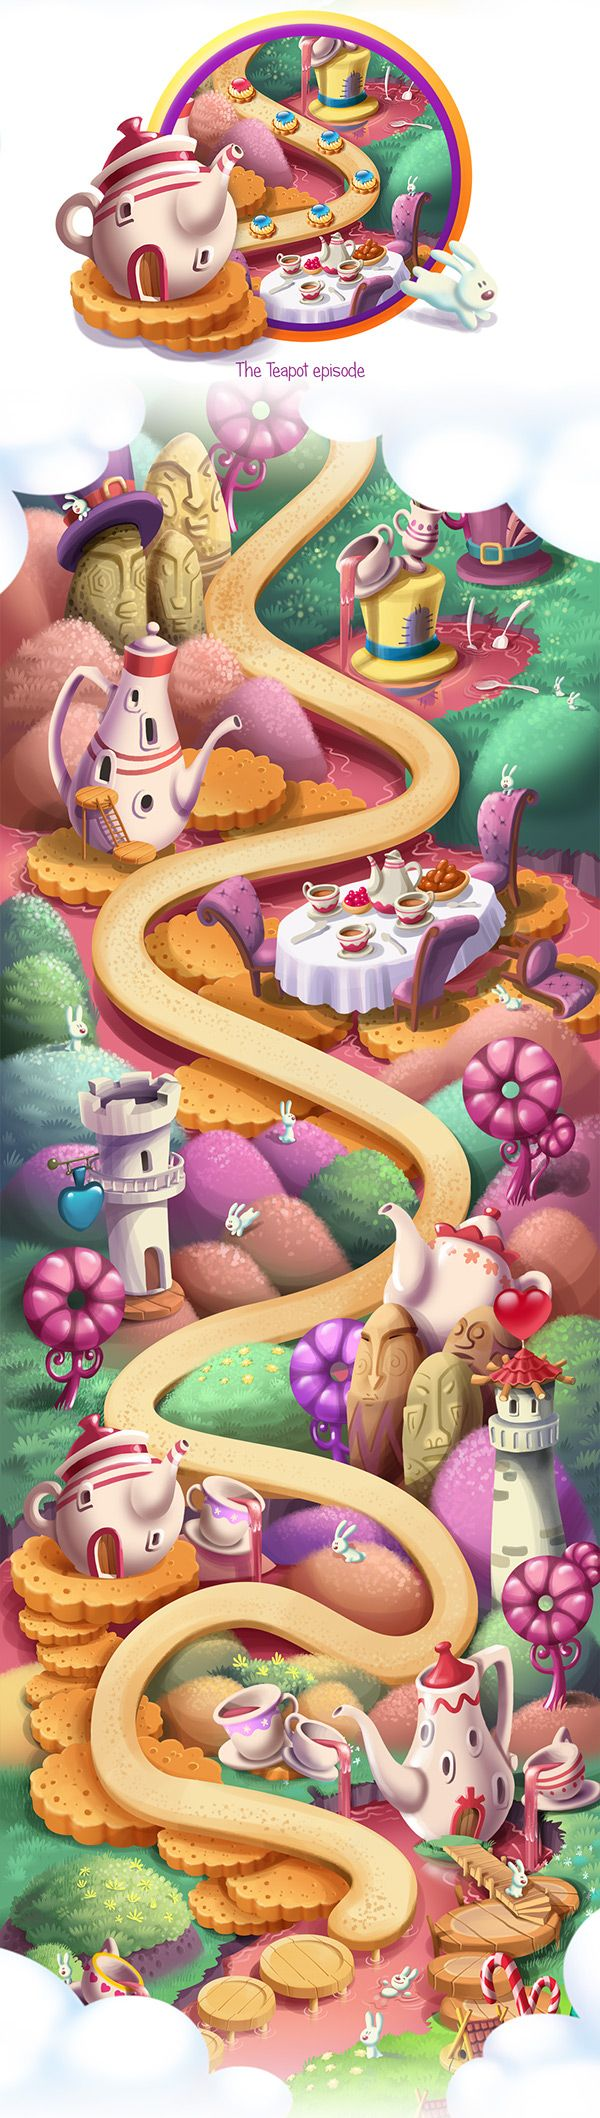 Make a journey to a magical Candy Land cramfull with gingerbread houses and trees of sweet cotton wool with the young and enchanting brother and sister. Help main characters, to feed poor kids by collecting bits of sweets in a wonderful Match 3!